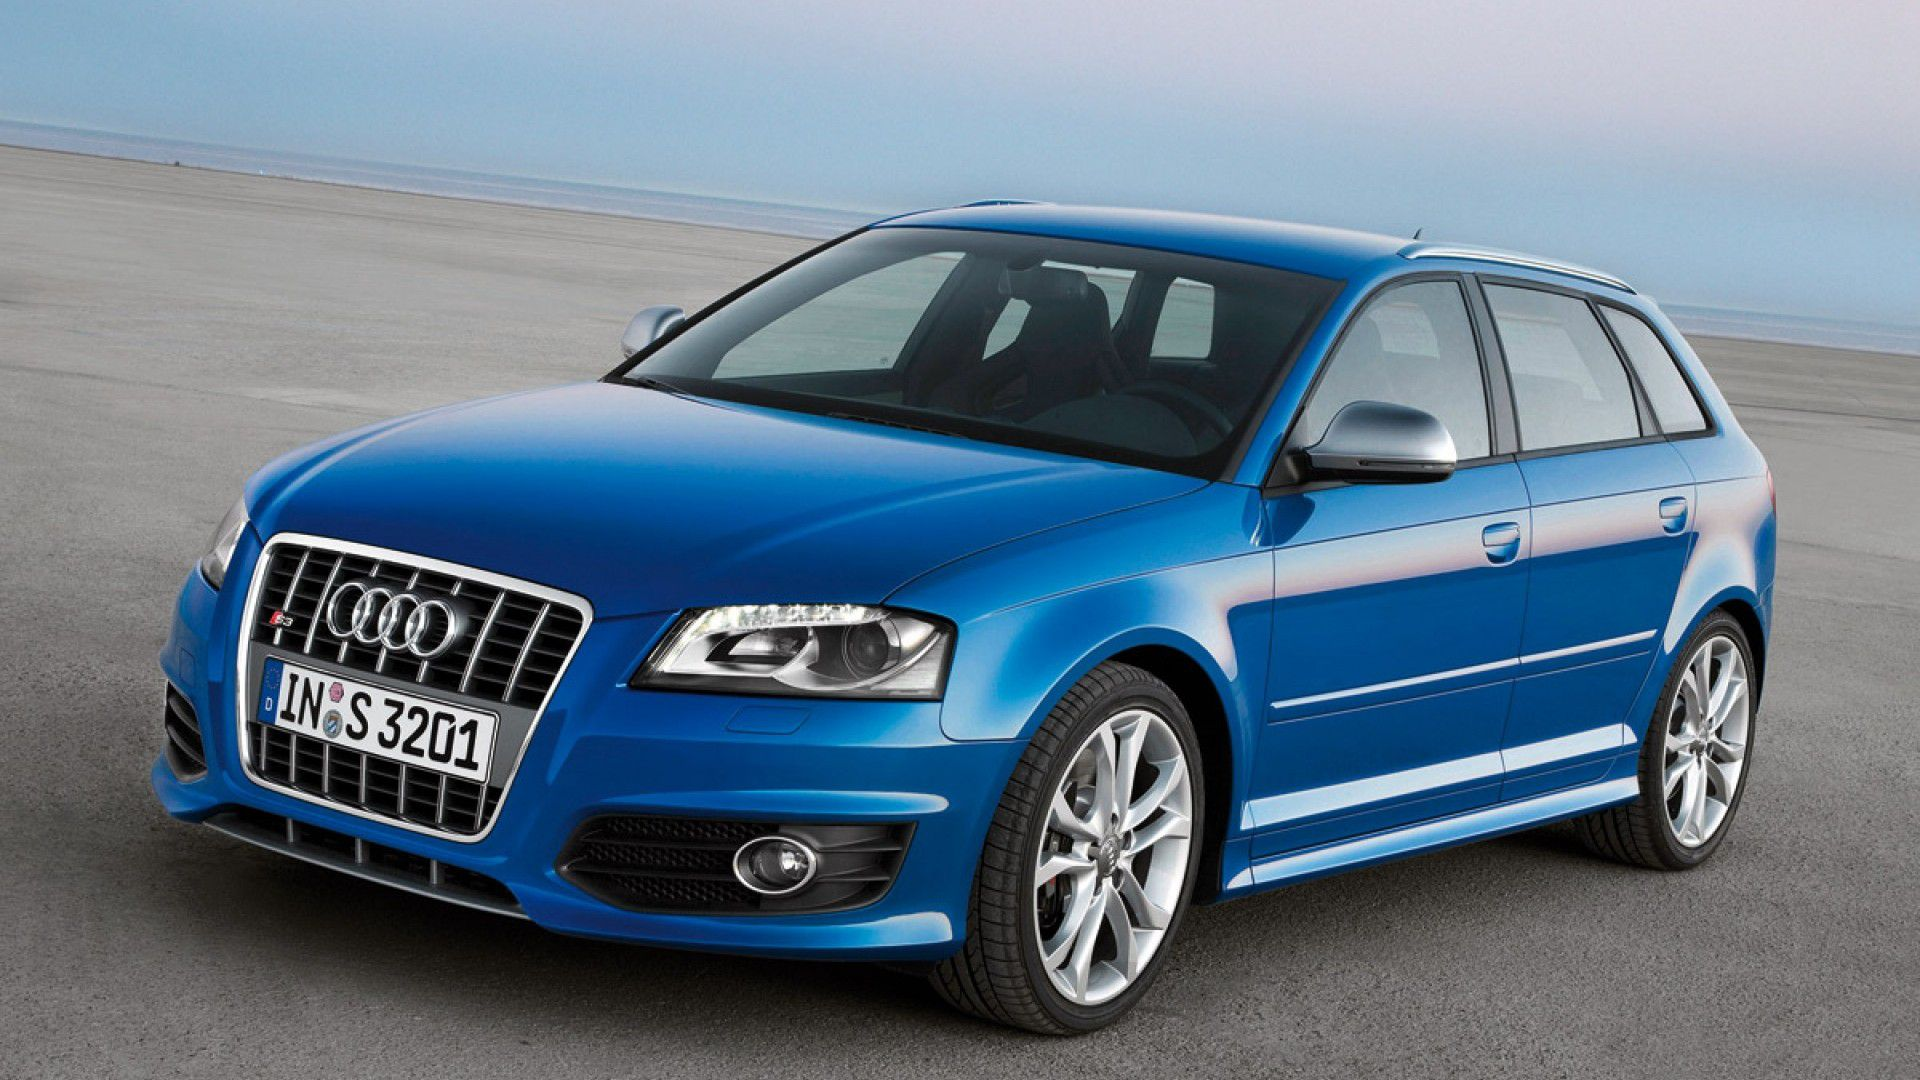 Audi A3 Sportback (2005 to Present)